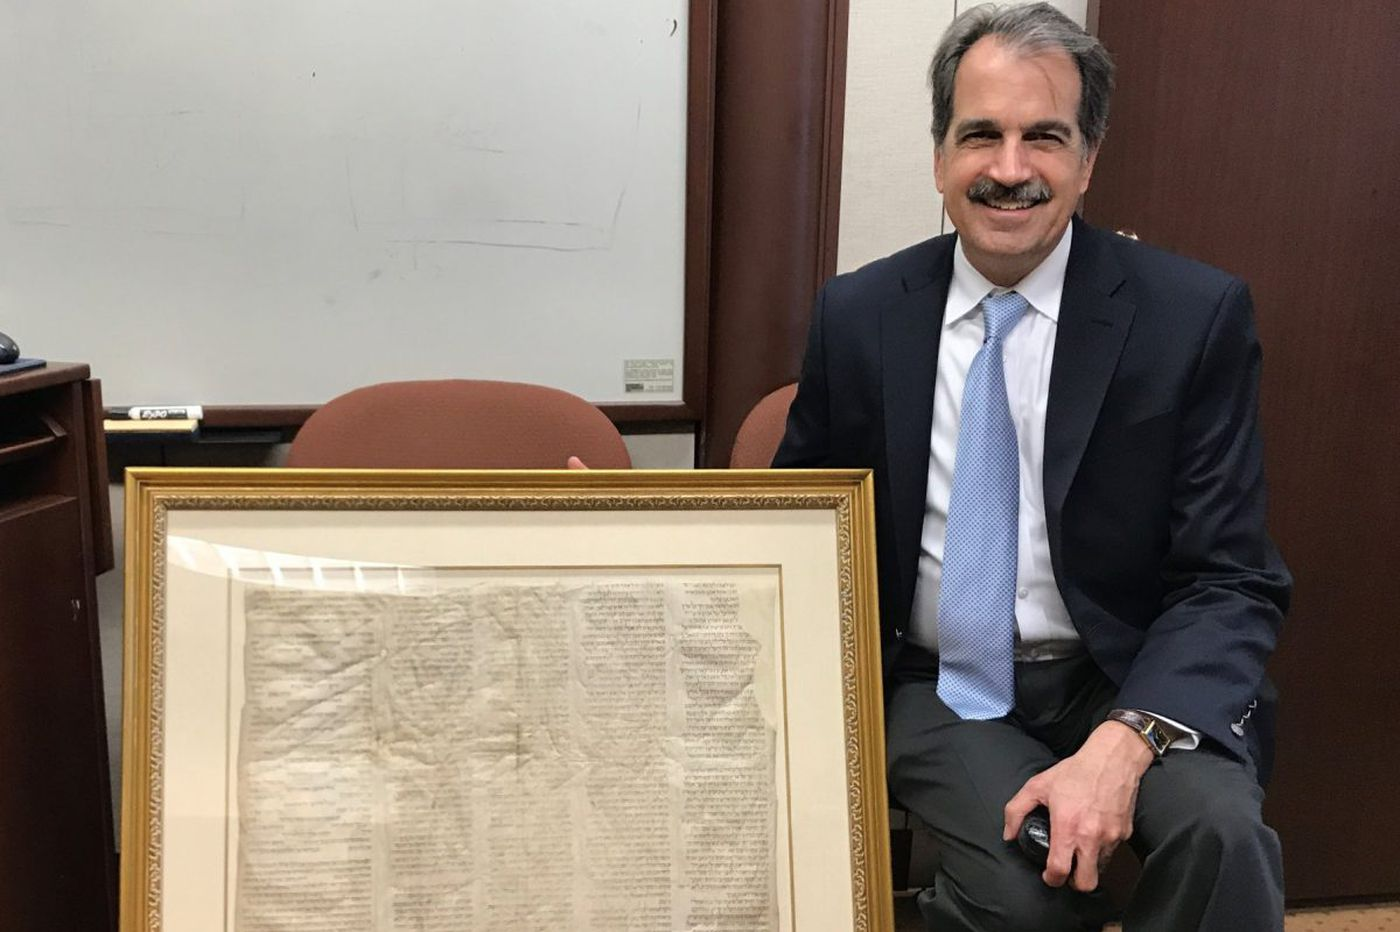 Ancient Torah scroll sheet preserved for public display. A Rutgers professor played a vital role in its acquisition